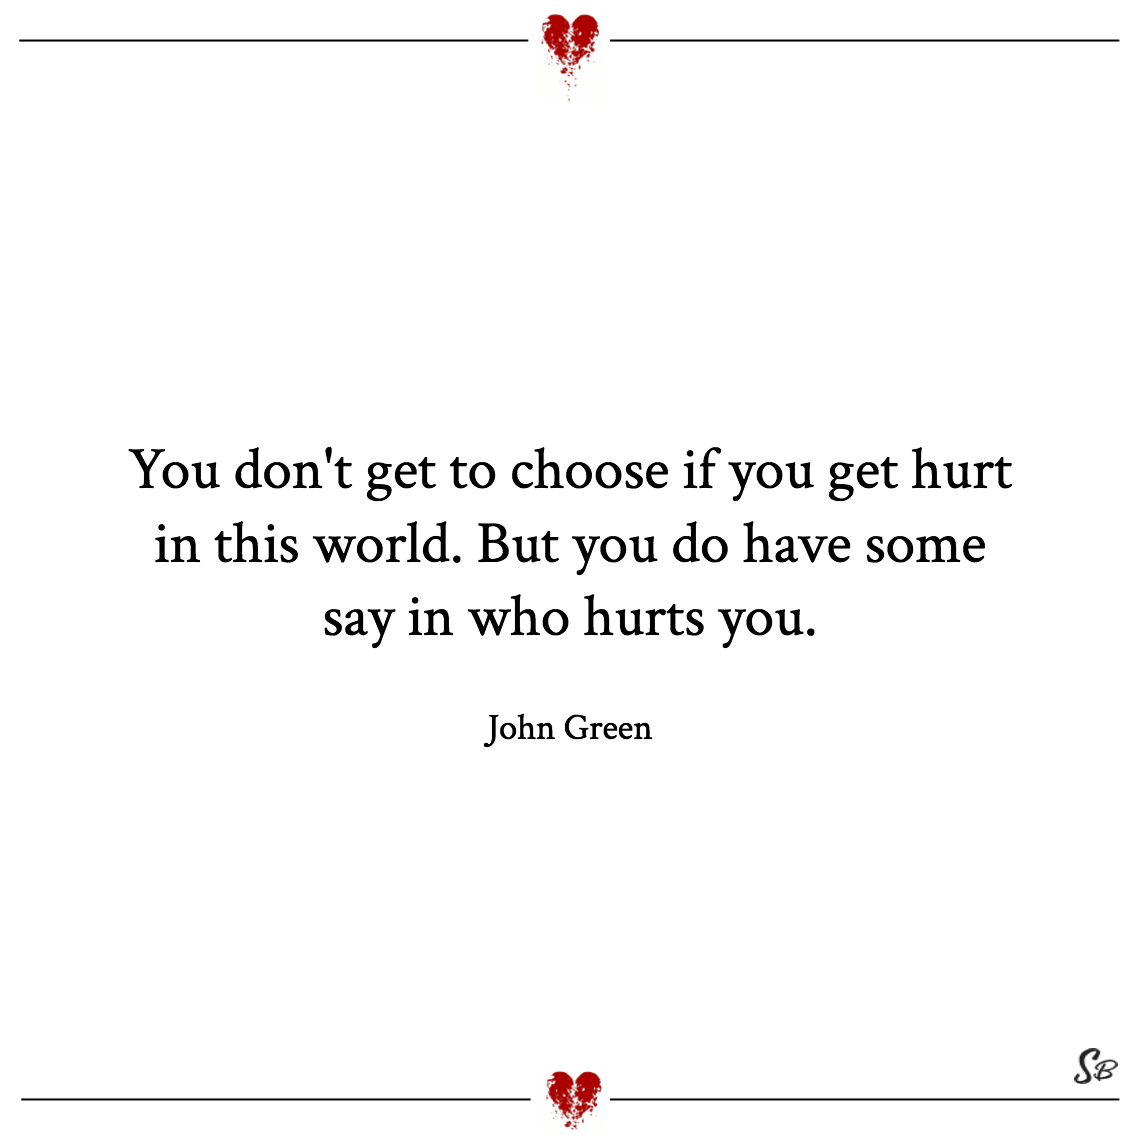 You don't get to choose if you get hurt in this world. but you do have some say in who hurts you. john green